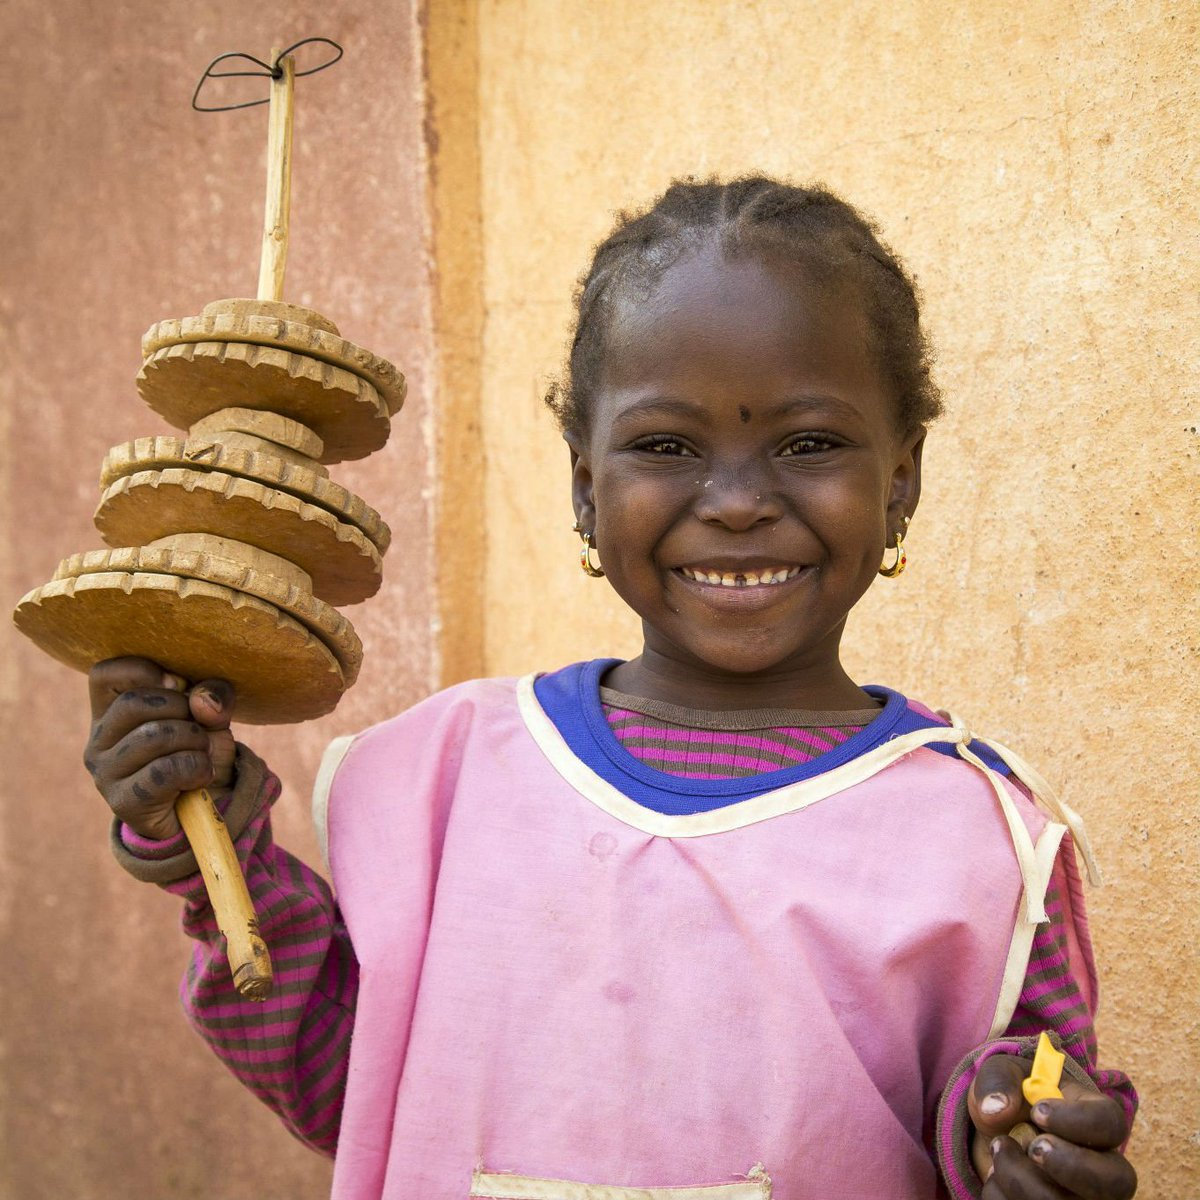 Do you remember your favourite game at school? #ForEveryChild, play 😄. @unicefmali